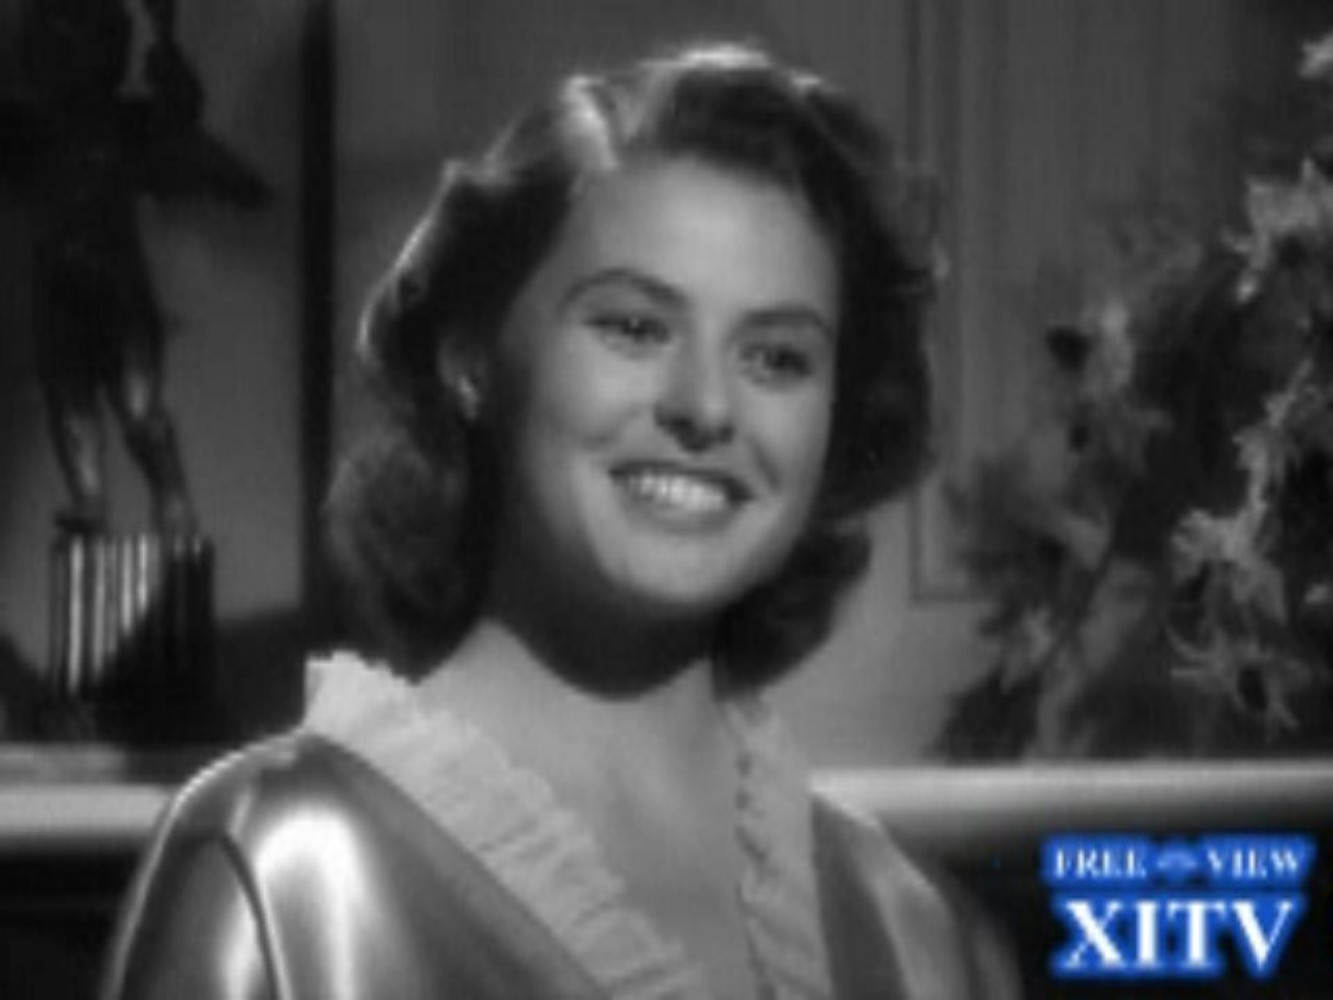 Watch Now! XITV FREE <> VIEW™ &quot;CASABLANCA&quot; Starring Ingrid Bergman and Humphrey Bogart! XITV Is Must See TV!